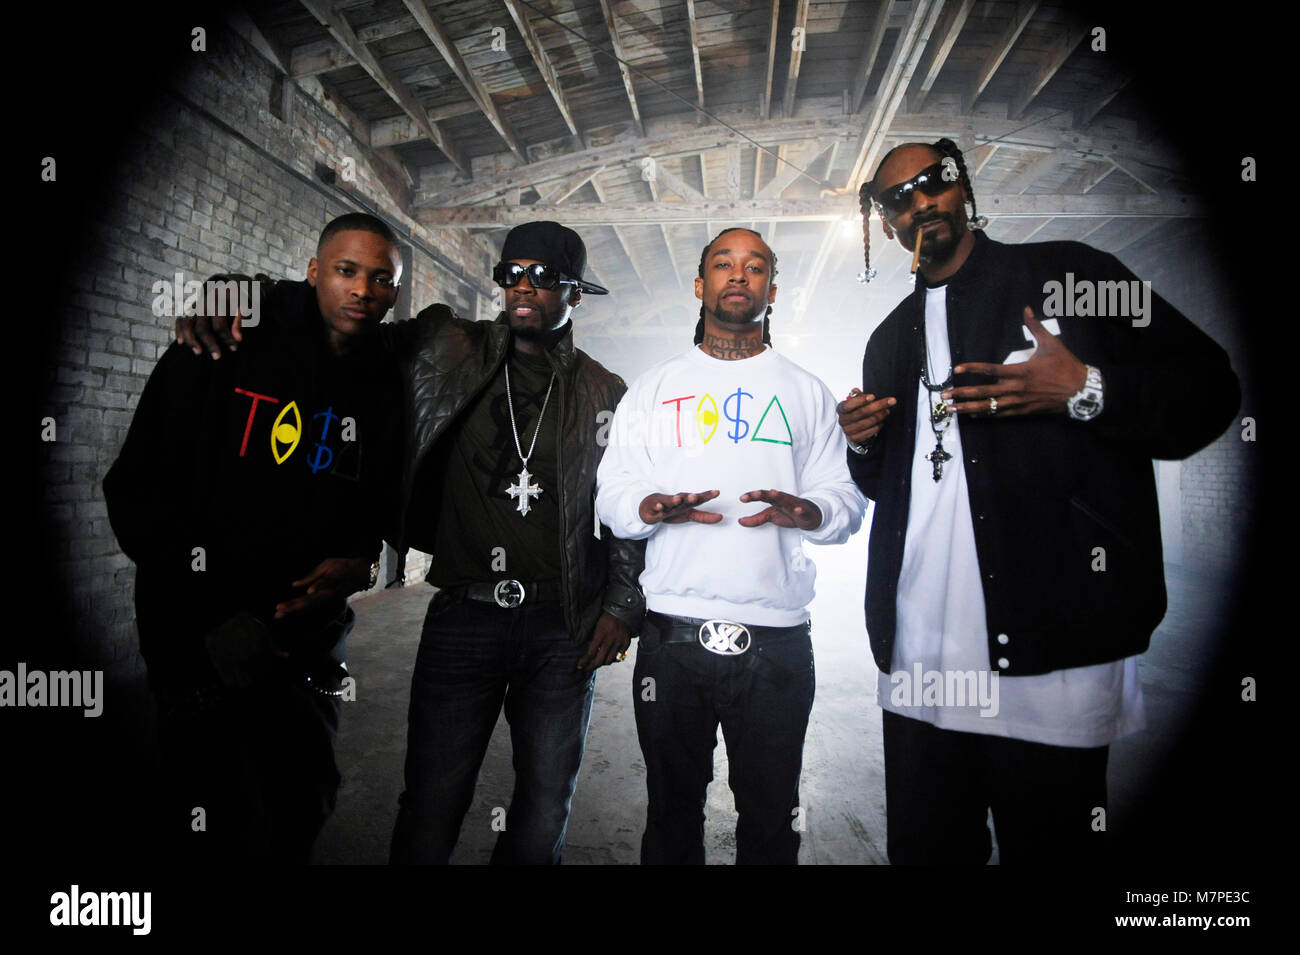 L R Yg 50 Cent Ty Dolla Sign And Snoop Dogg On Set Portrait At Stock Photo Alamy